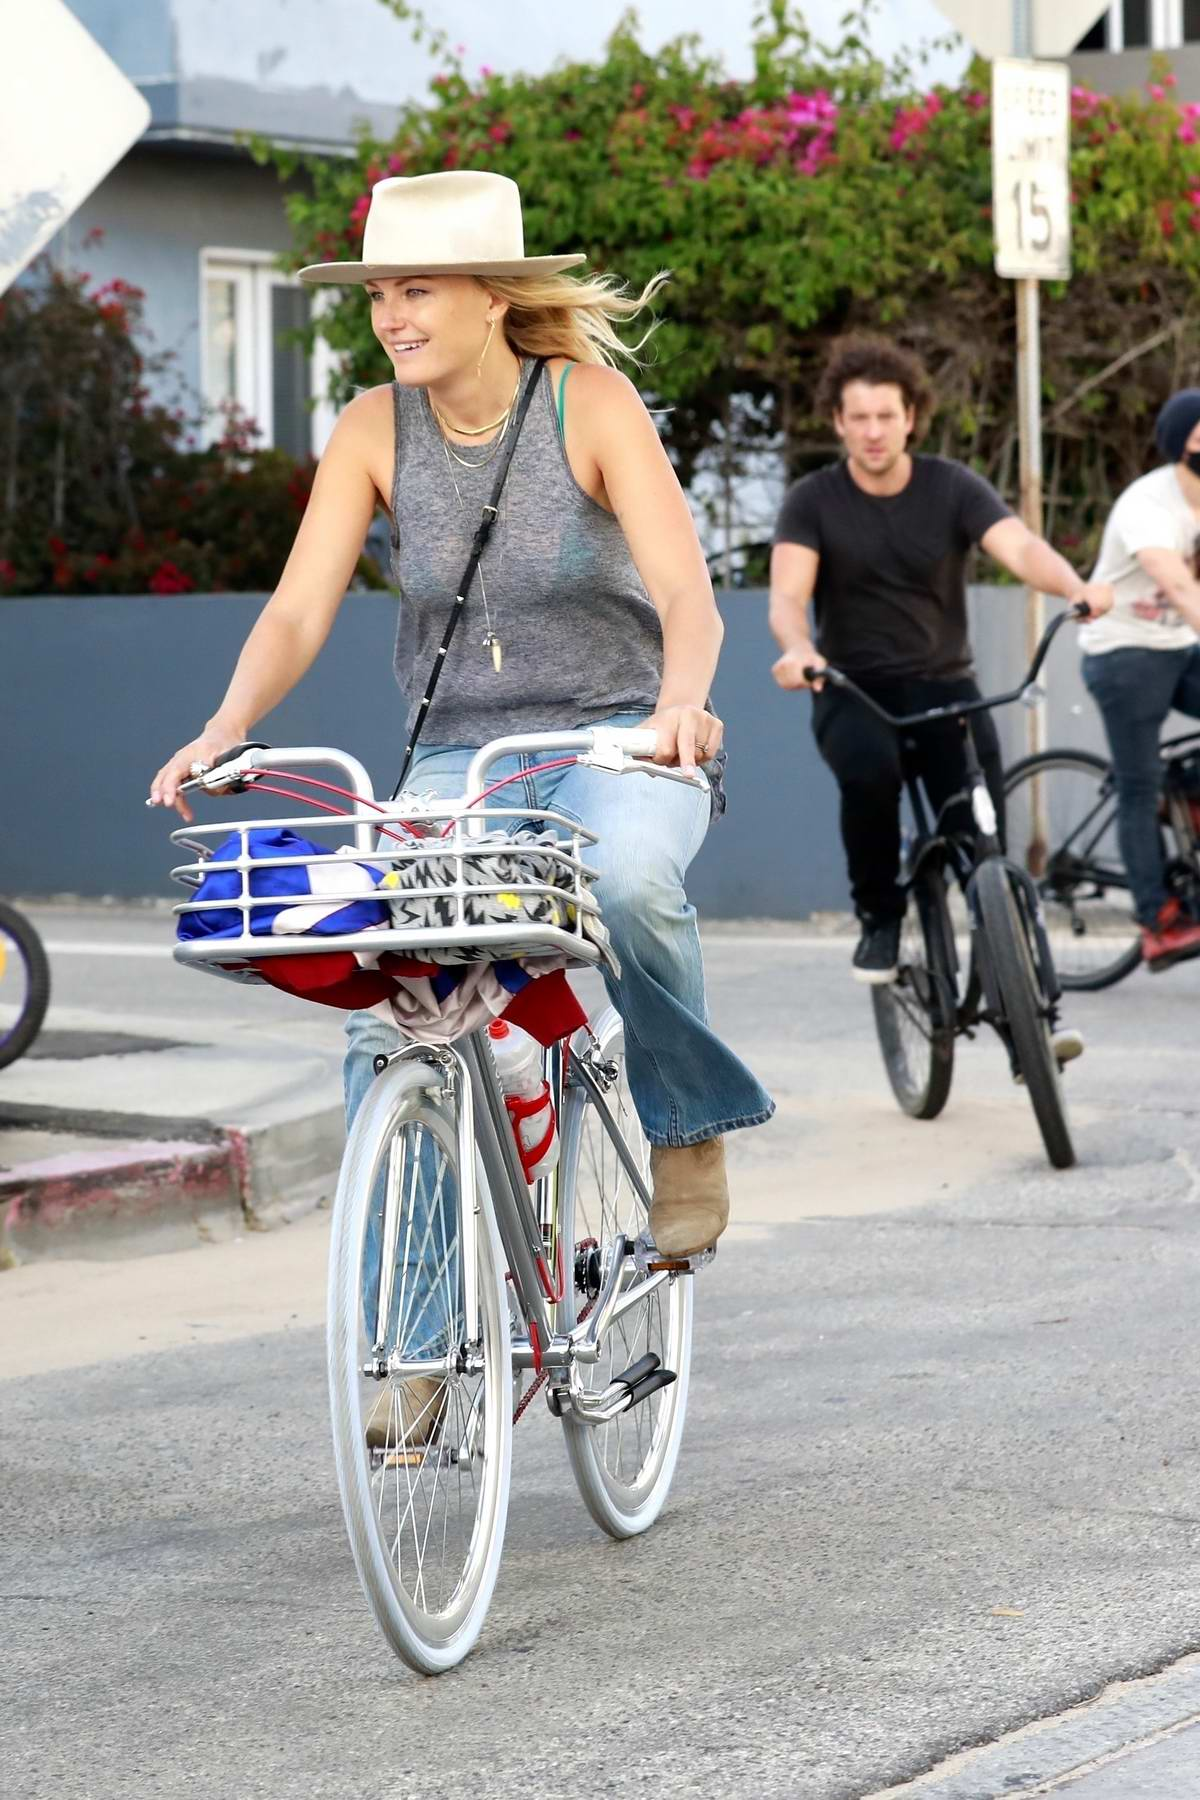 Malin Akerman enjoys a bike ride with her husband and sister in Venice, California